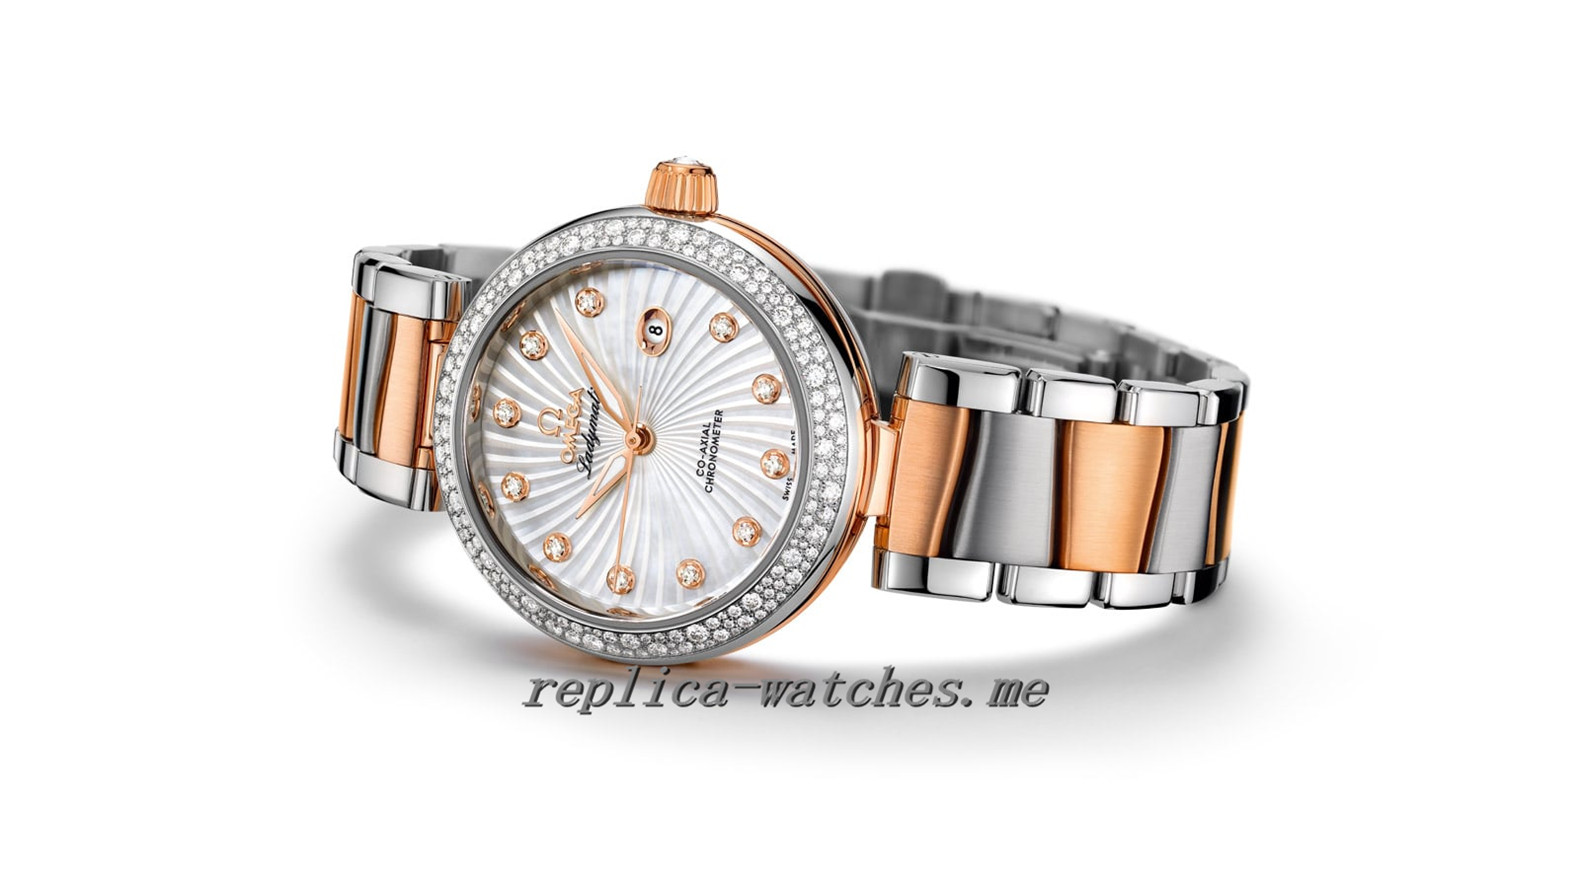 Replica Omega Ladymatic Watches